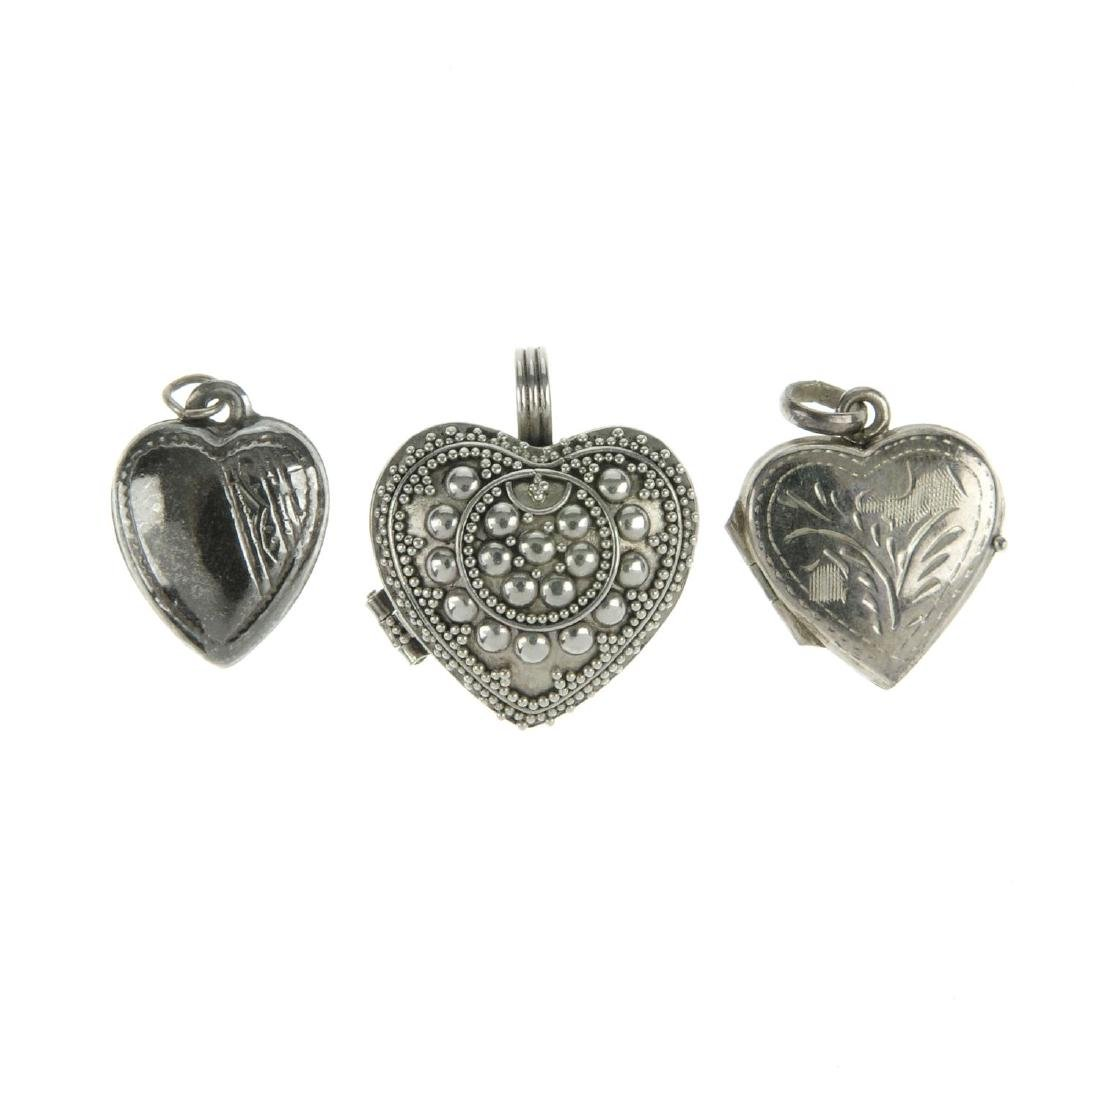 A selection of silver and white metal lockets. To